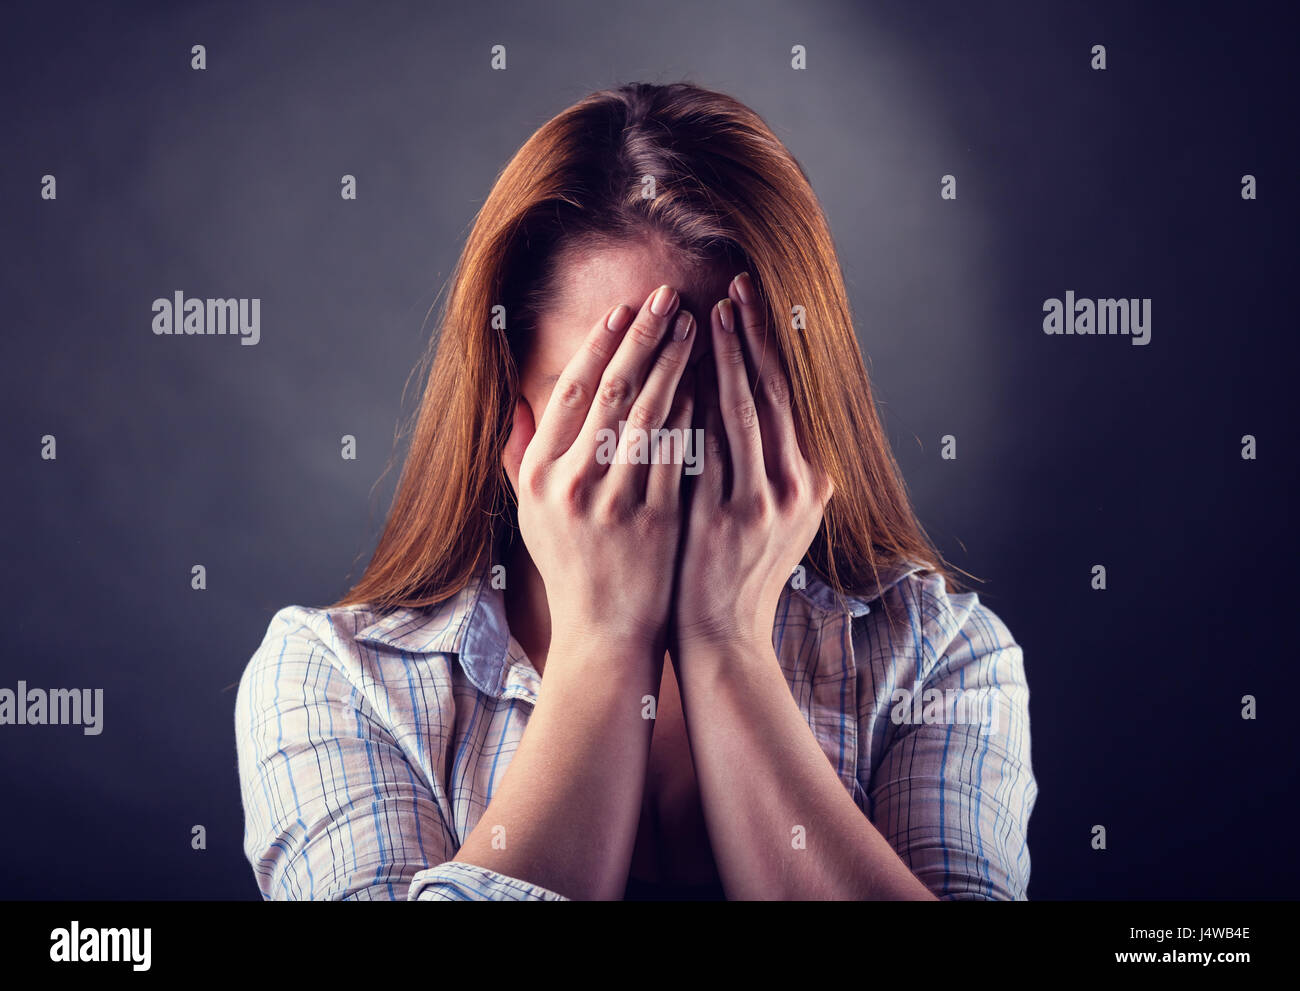 Crying woman on a dark background - Stock Image